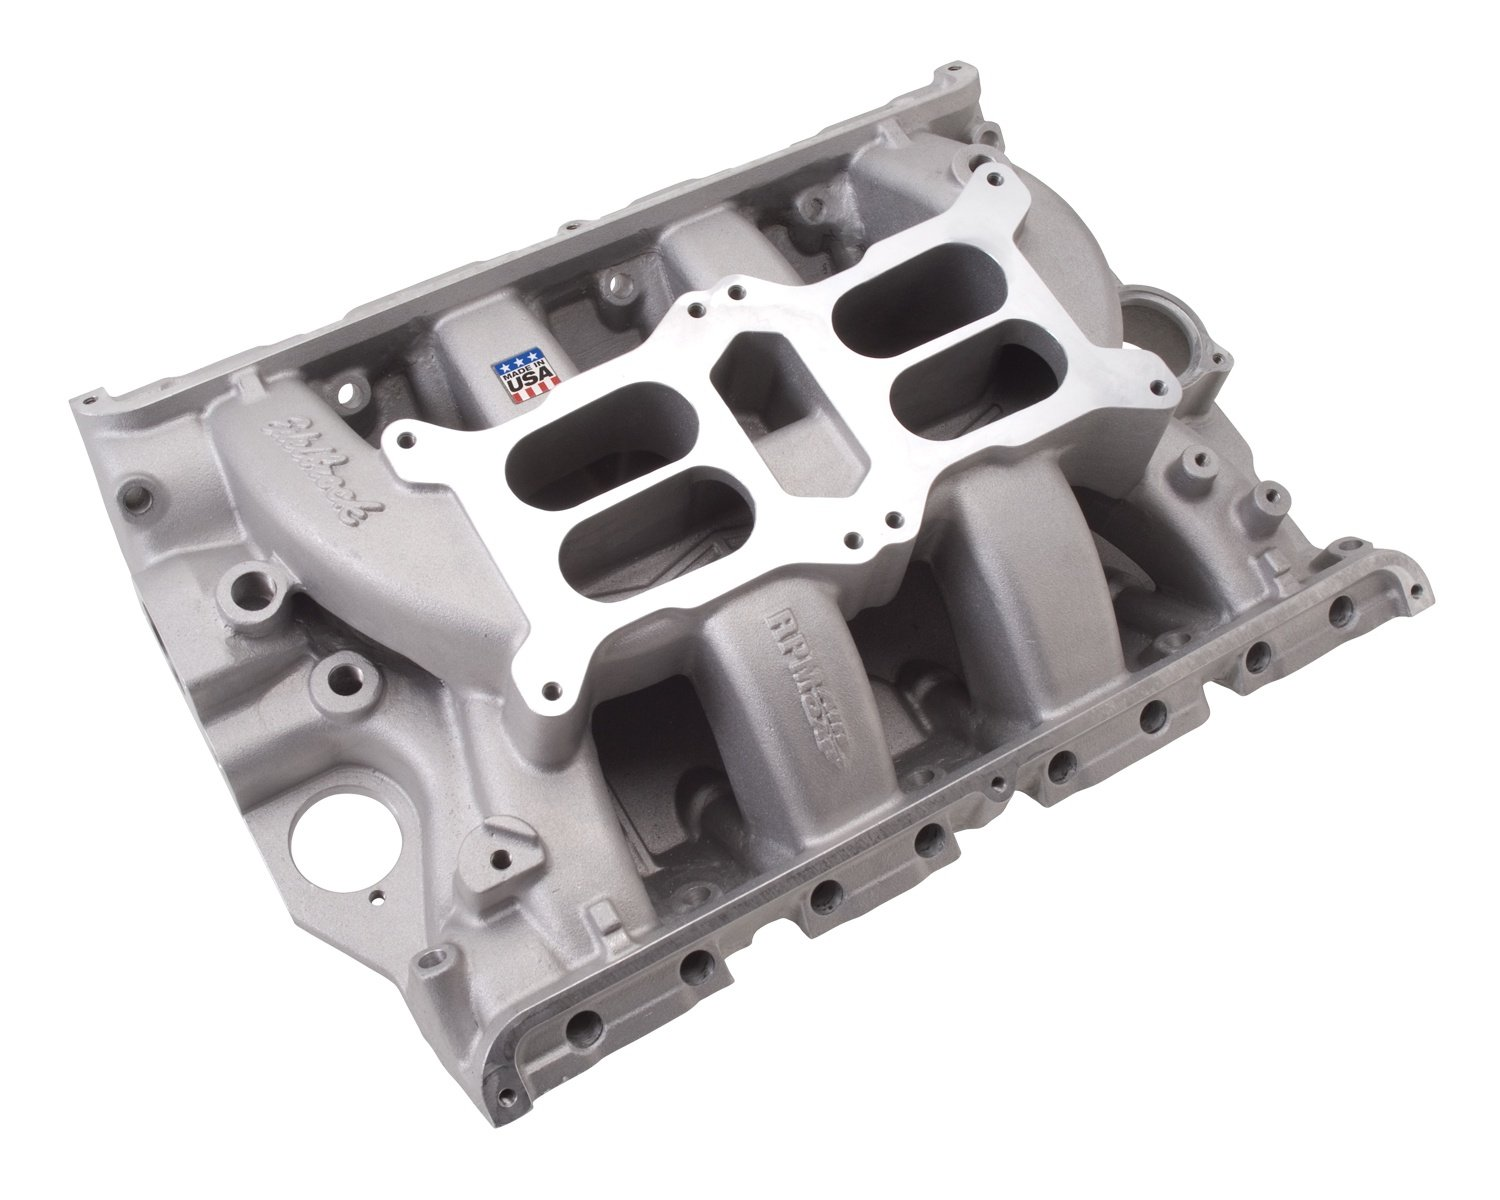 Edelbrock 7505 Rpm Air Gap Dual Quad Fe Intake Manifold 428 Ford Engine Diagram Non Egr1500 6500rpmford 390 Will Not Fit 427 Hi Riser And Tunnel Port Engines Automotive